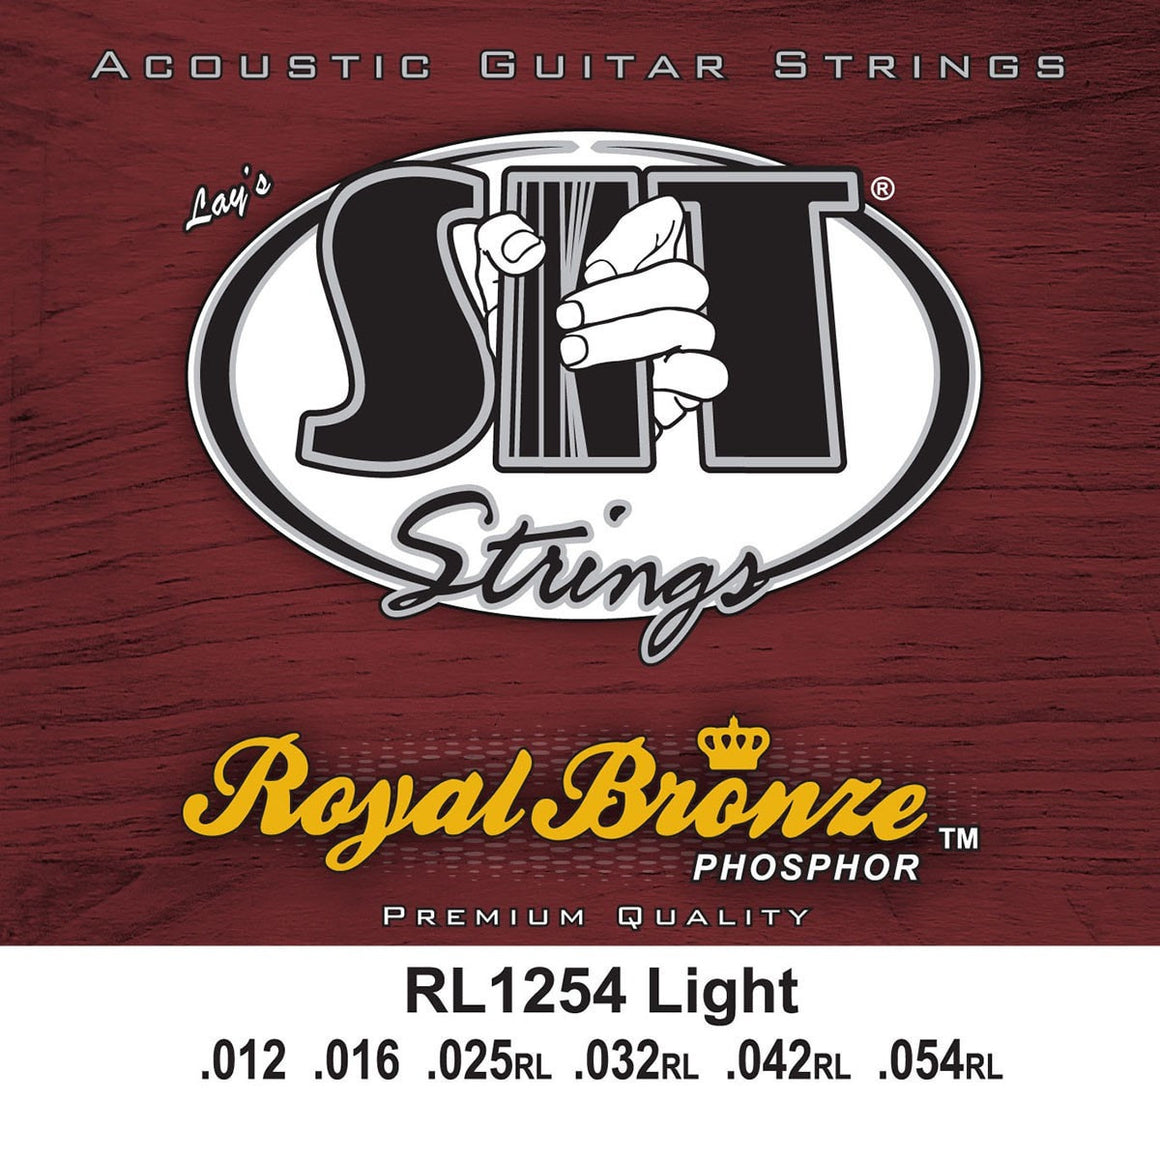 SIT Strings Acoustic Guitar Strings SIT Royal Bronze Light RL1254 Acoustic Guitar Strings